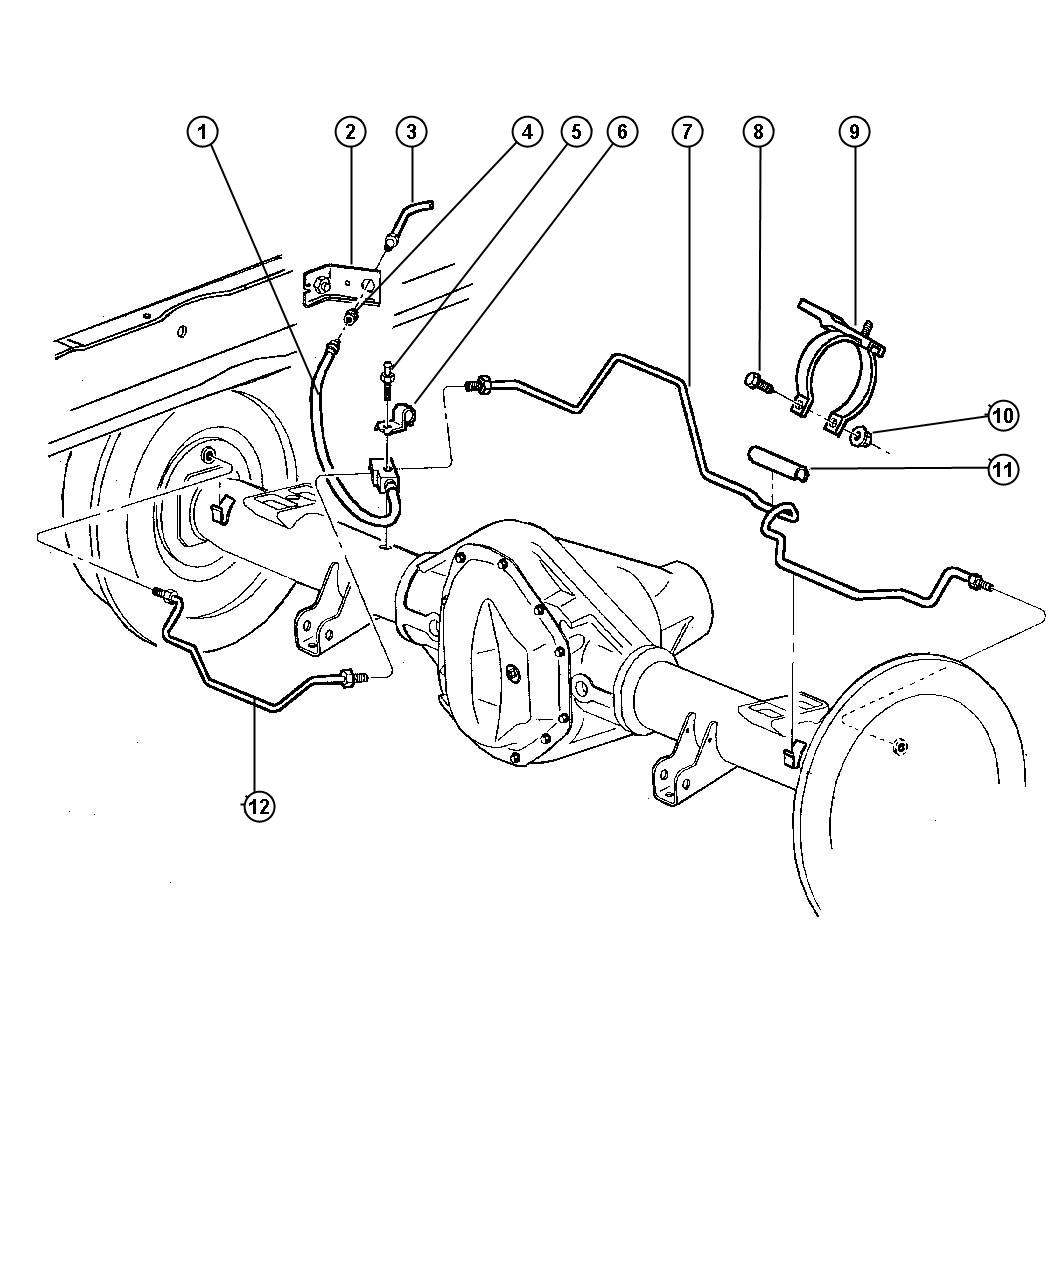 ShowAssembly on 2008 Chevy Silverado Wiring Diagram